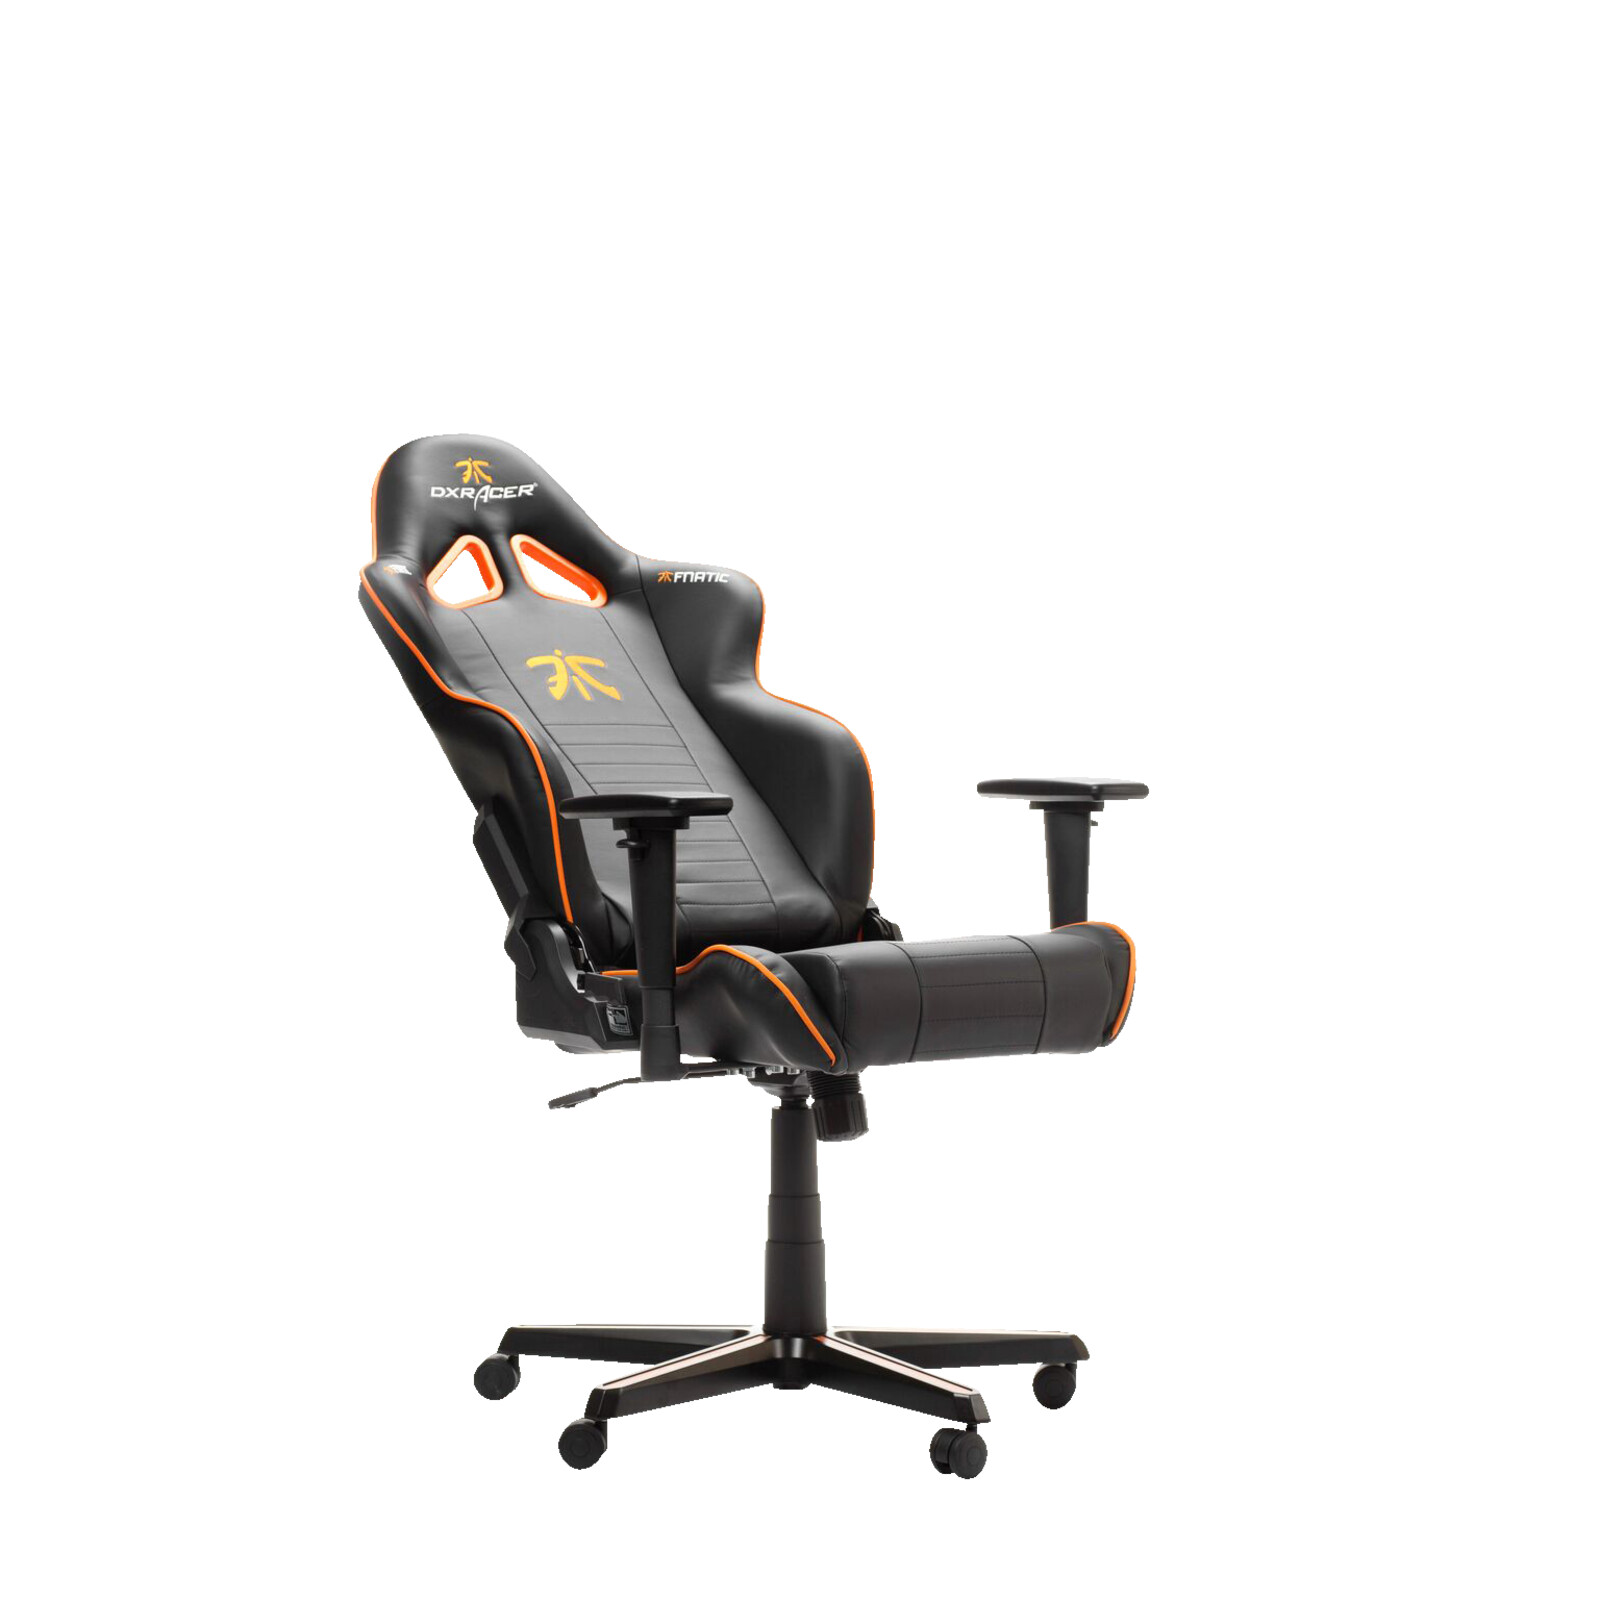 Gaming Stuhl Racer Details Zu Dxracer Racing R58 Gaming Chair Fnatic Edition Gaming Stuhl Schwarz Orange